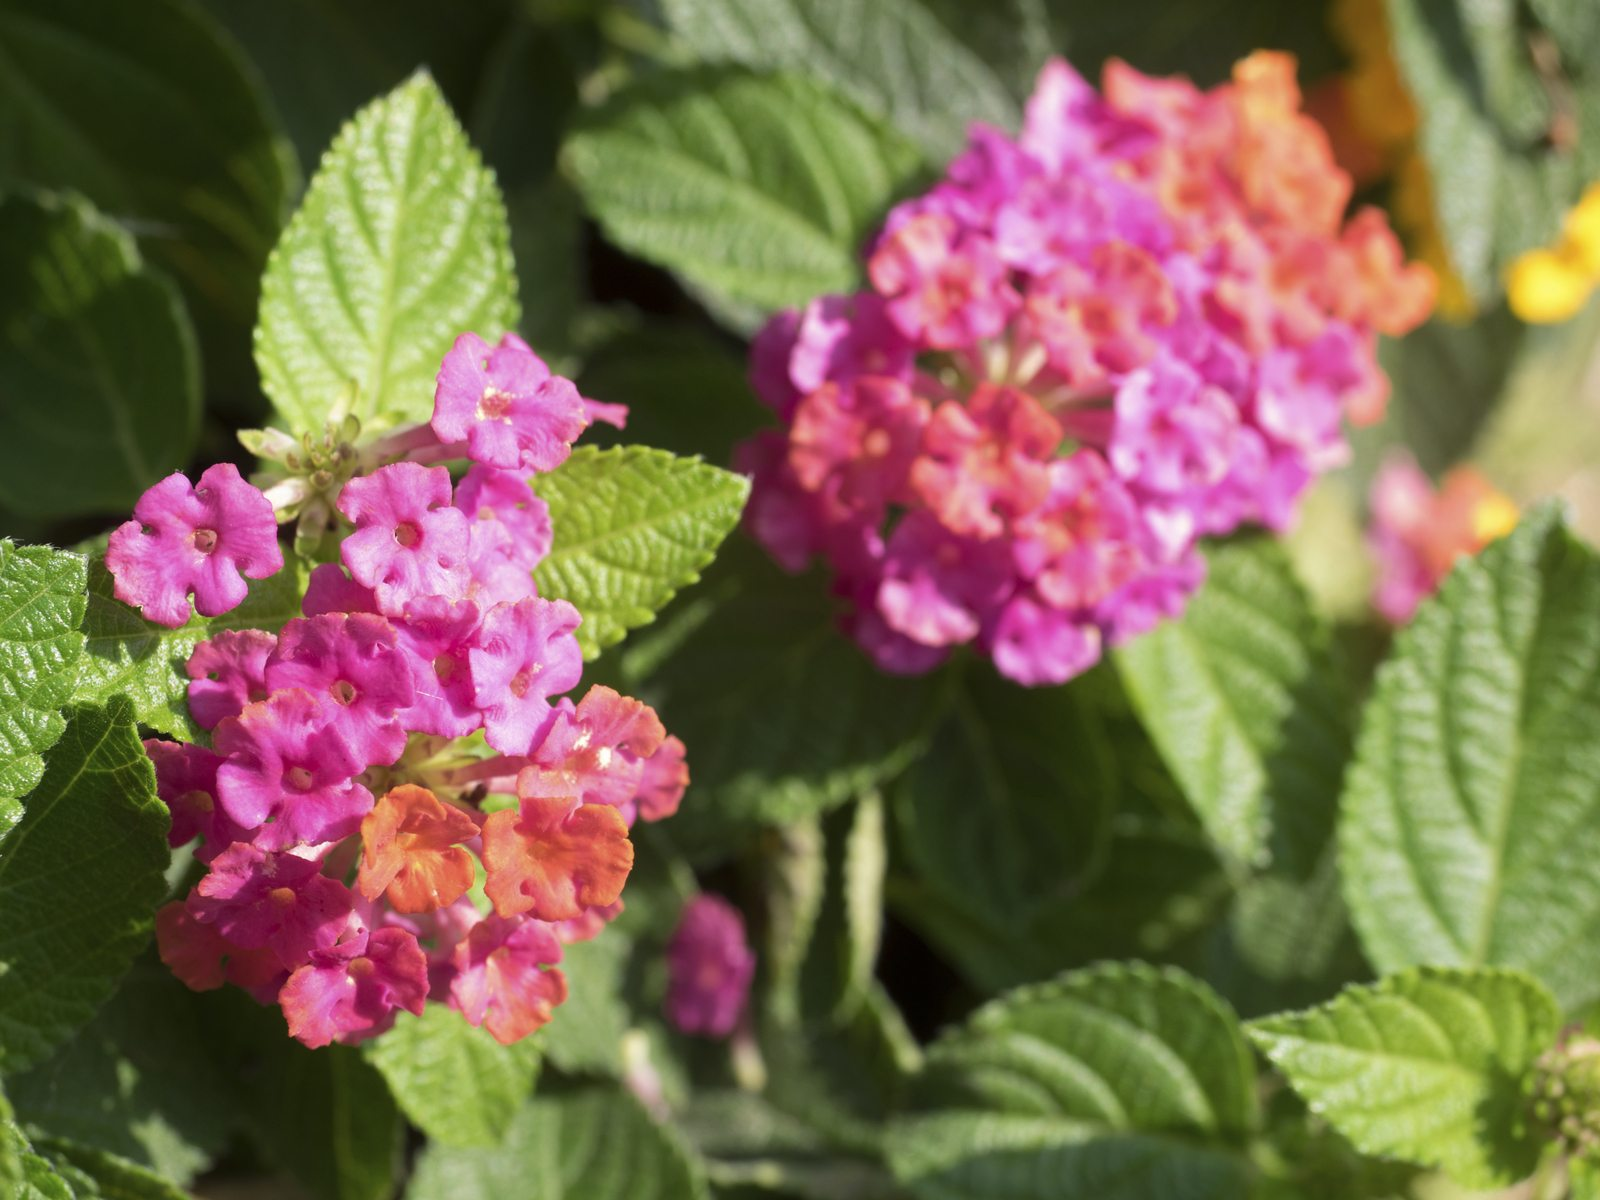 How Should I Fertilize Lantana When To Use Lantana Plant Fertilizer